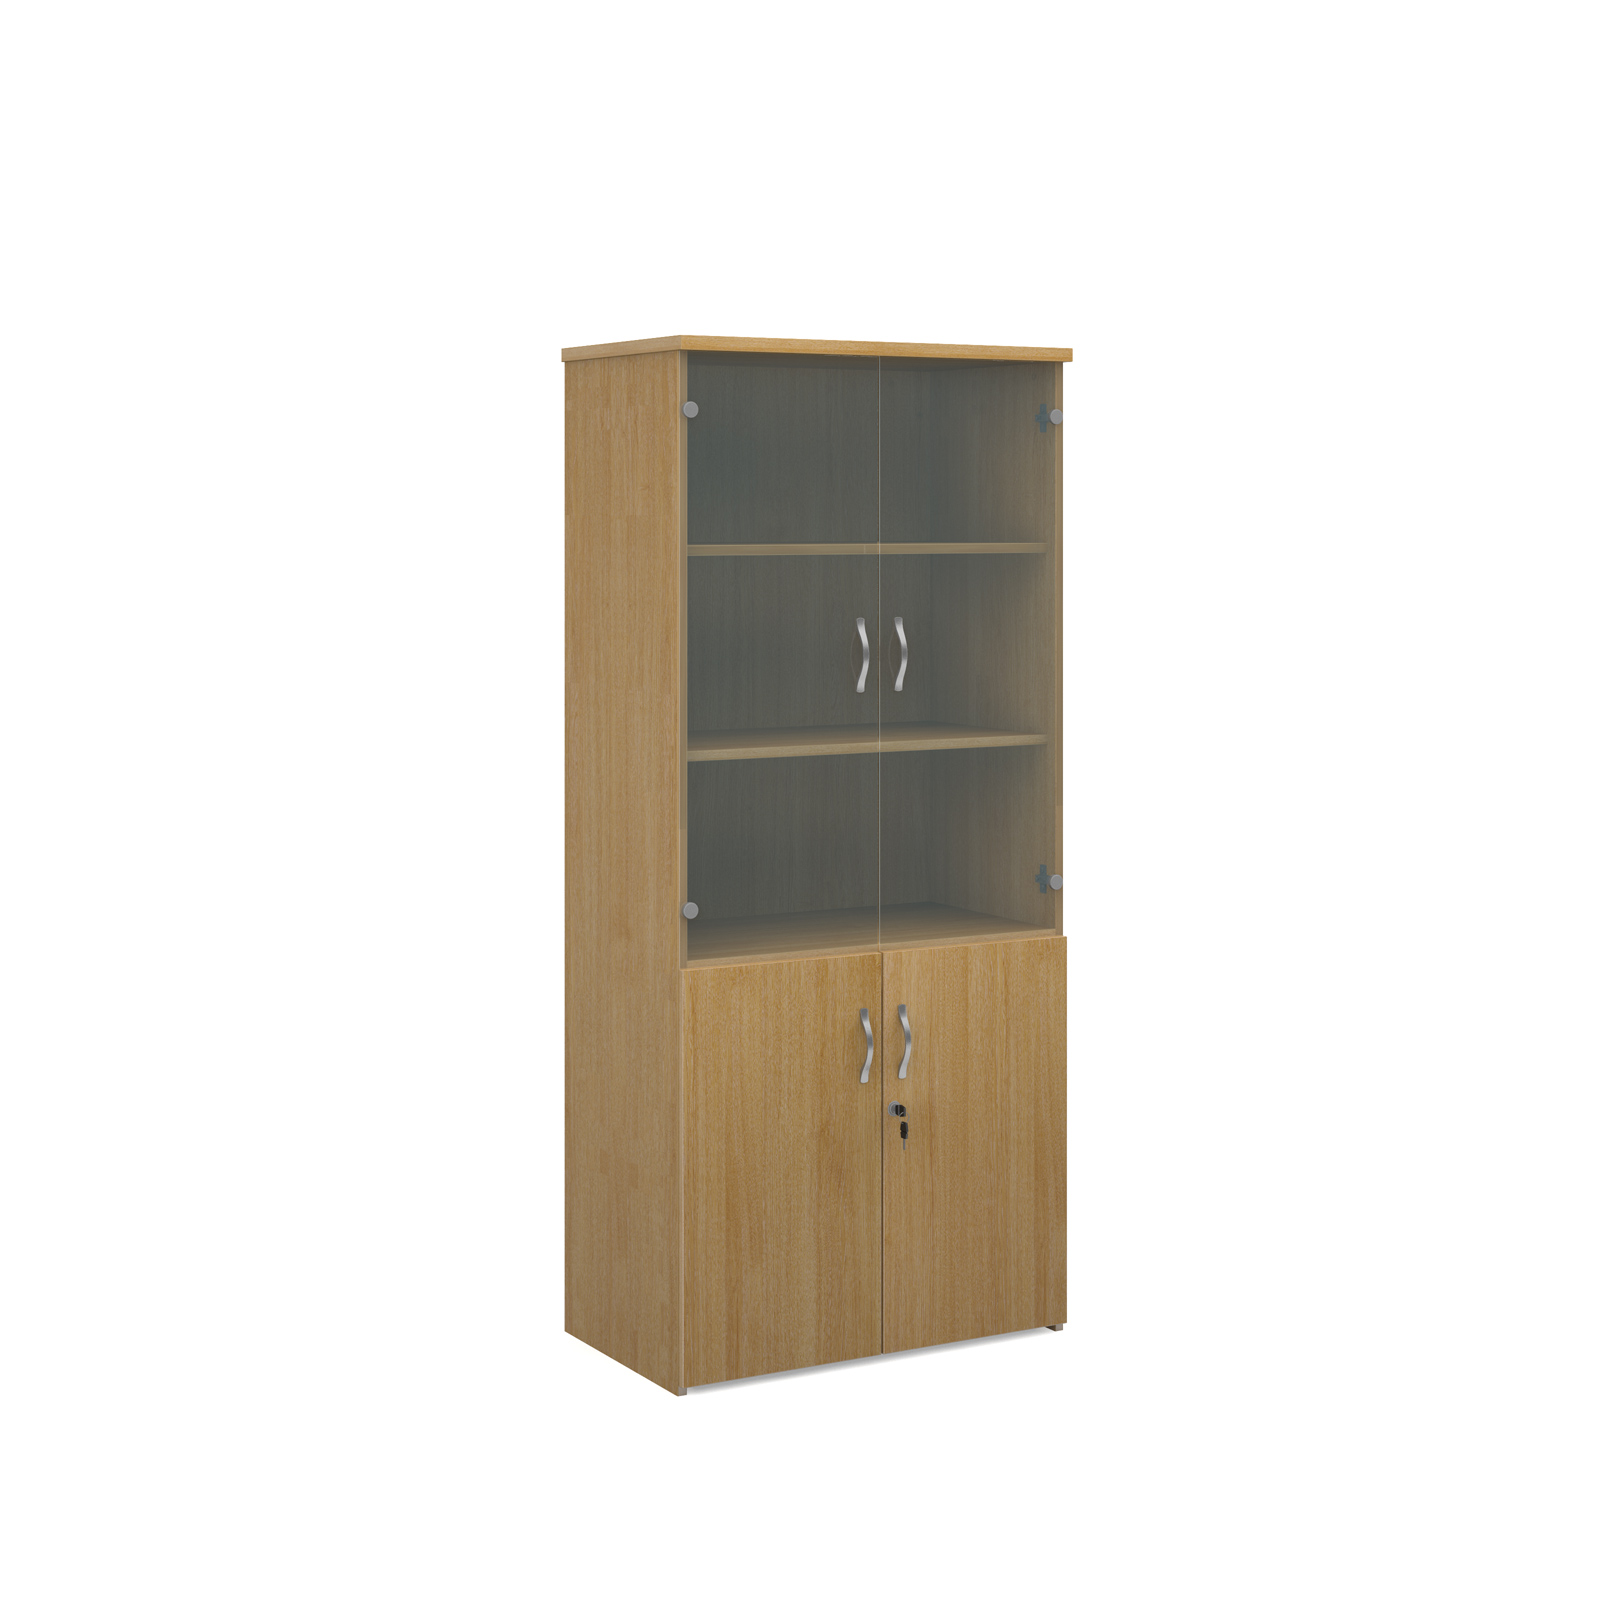 1790mm high combination unit with glass and wood doors in oak